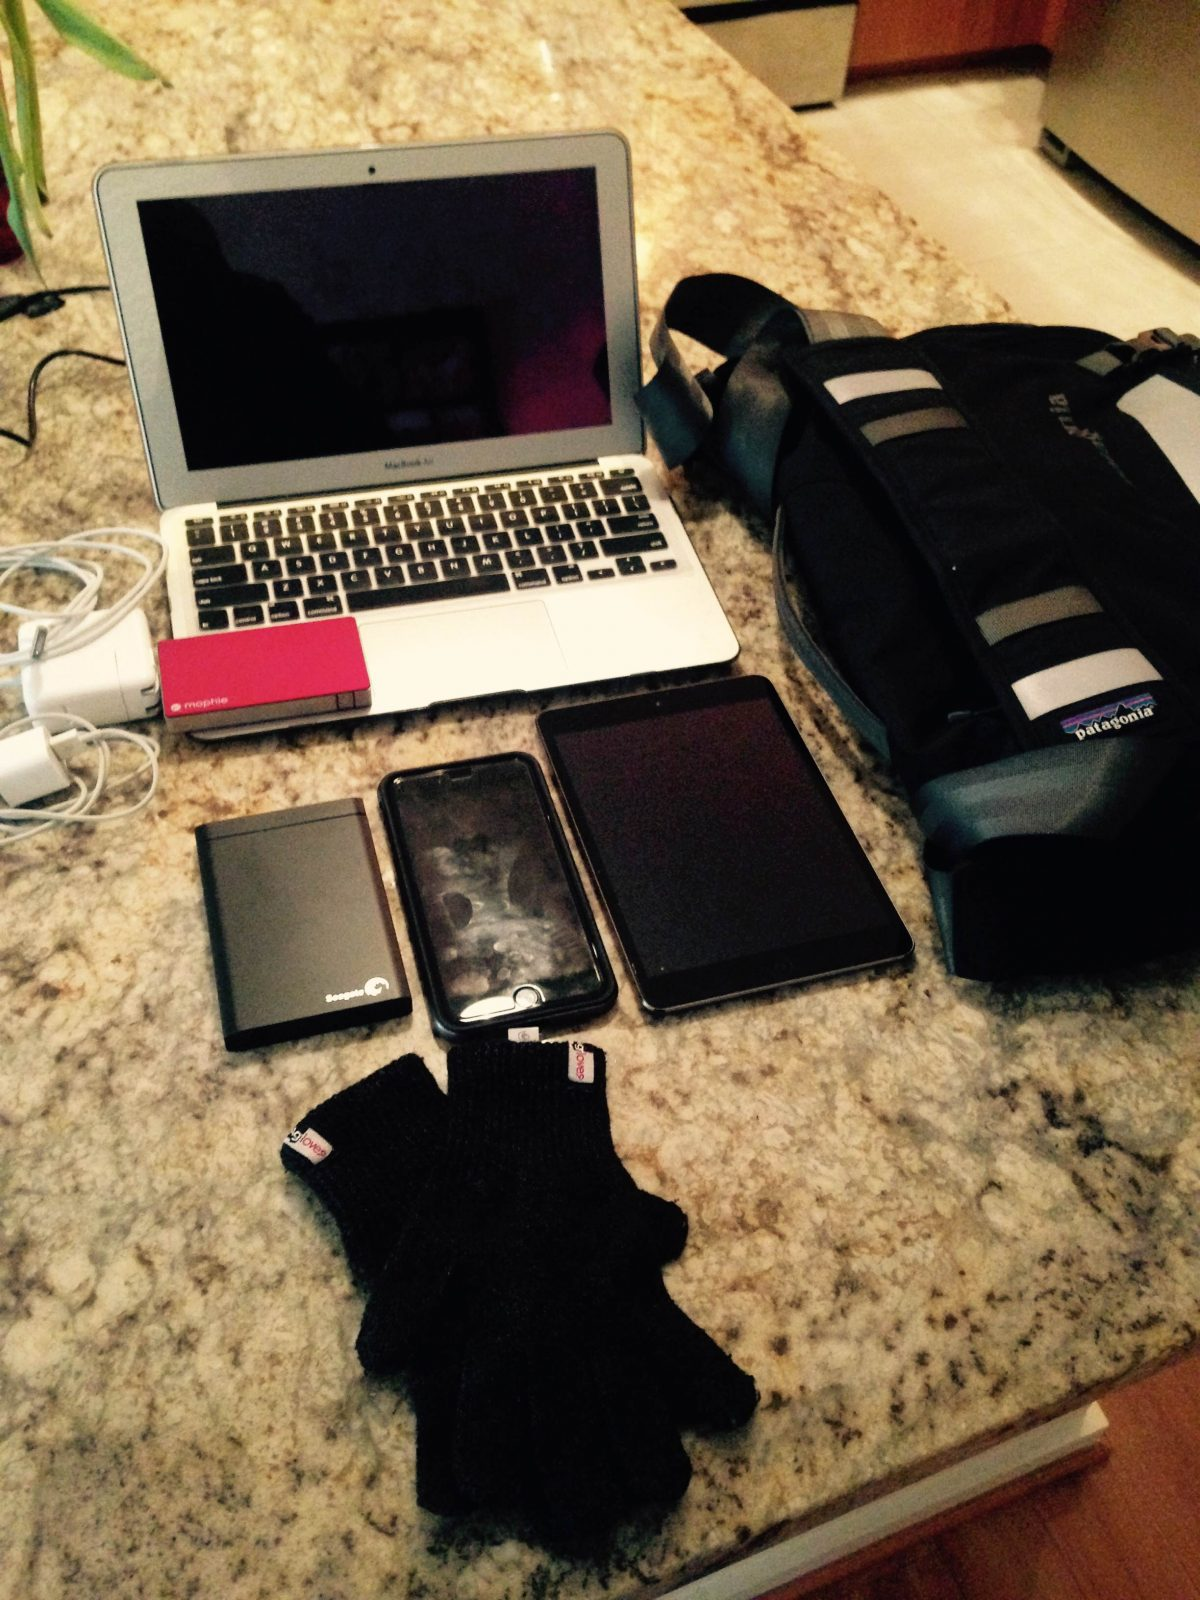 Mophie Laptop Bags Hulu Gear Bags Apple TV Apple About MY Gear